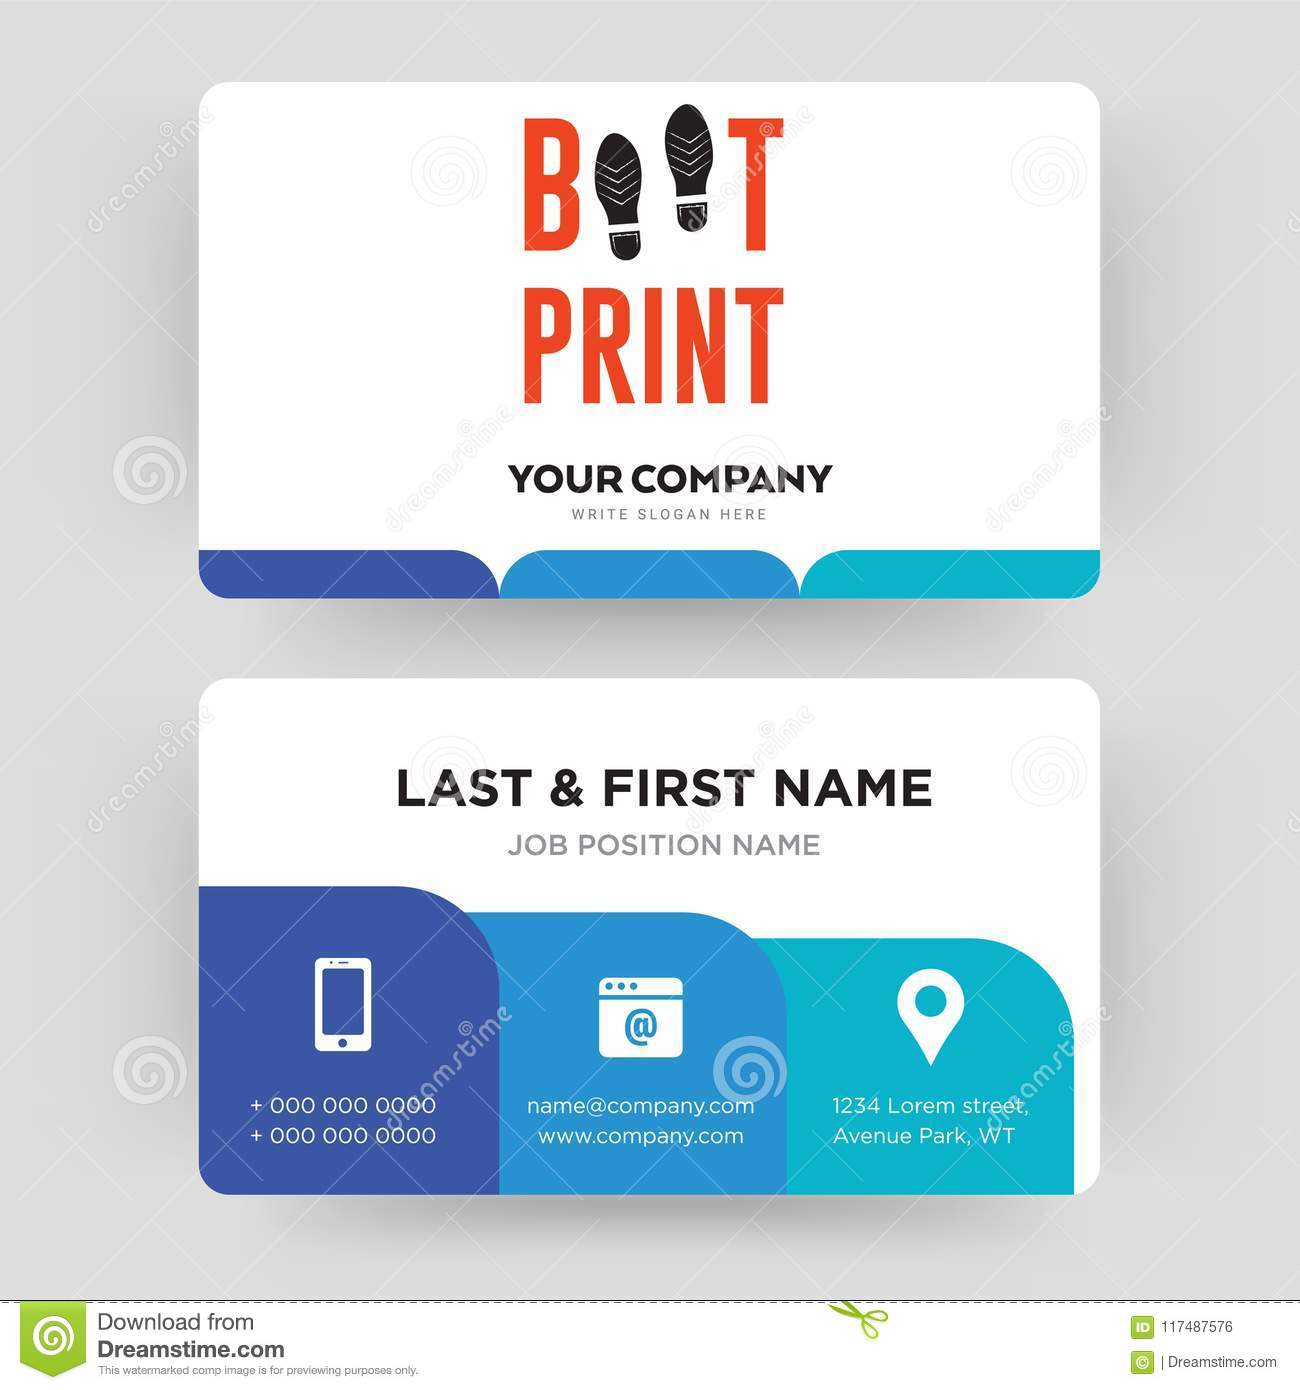 Boot print business card design template visiting for your company download boot print business card design template visiting for your company stock photo image friedricerecipe Images